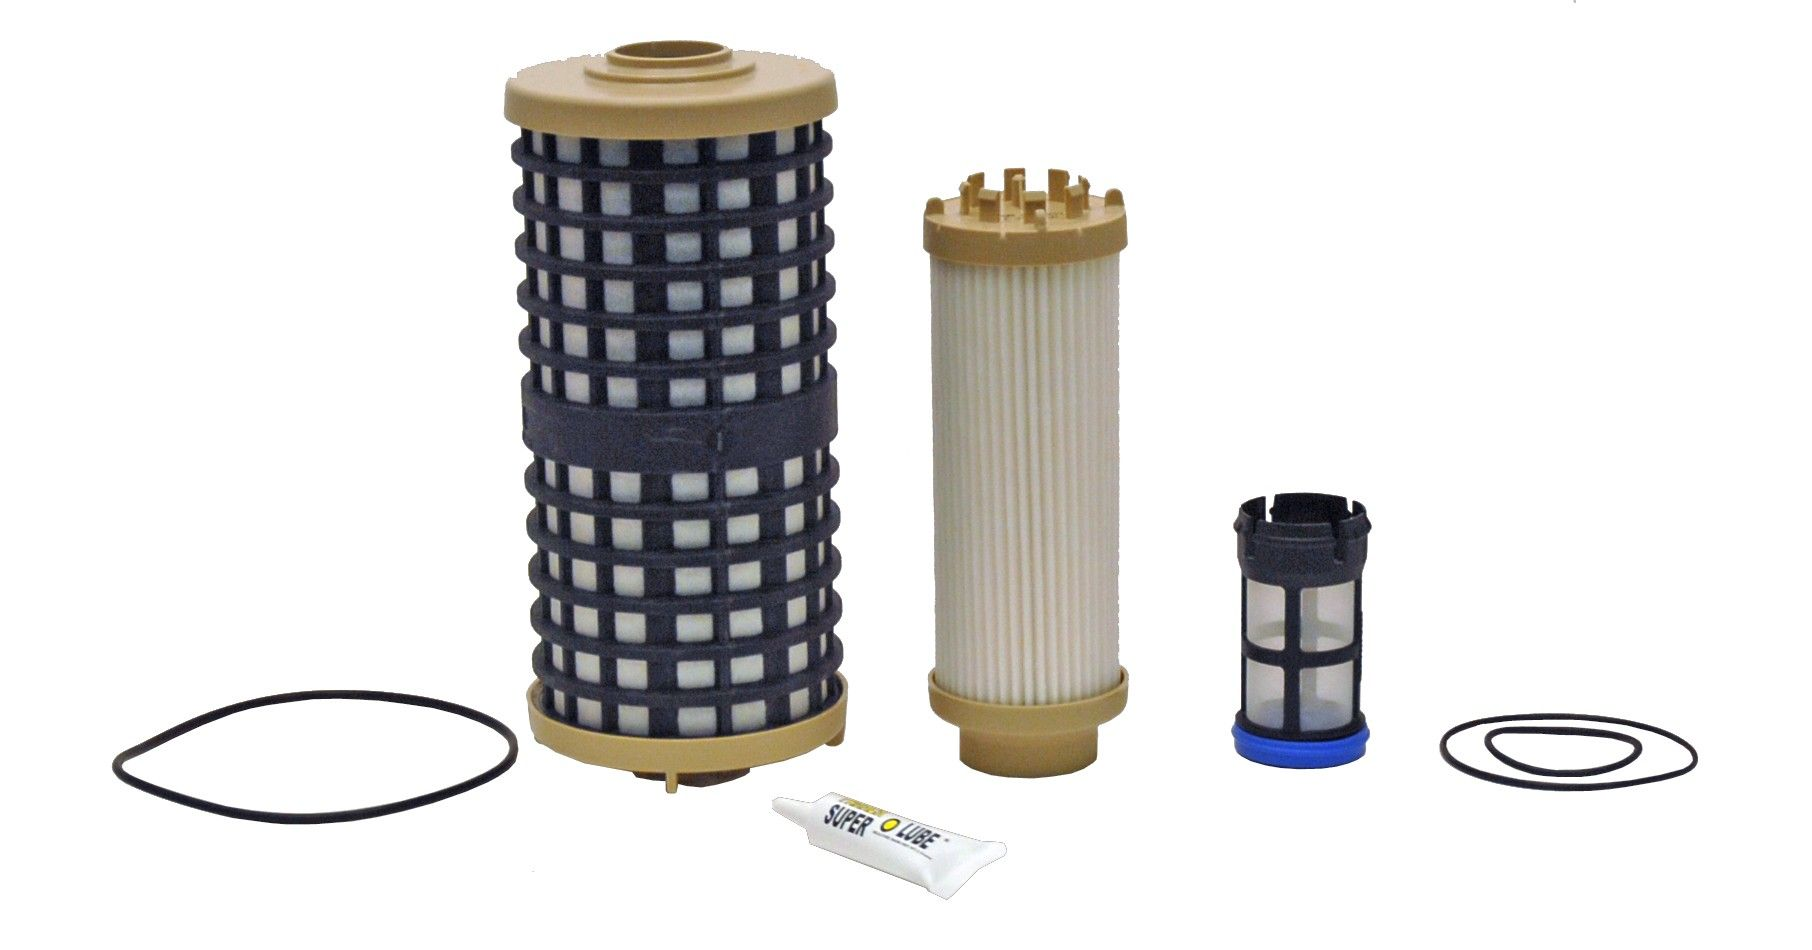 Freightliner Cascadia Fuel Filter Replacement Hastings Wix Go Parts Mercedes Benz 2010 6 Cyl 148l 33849